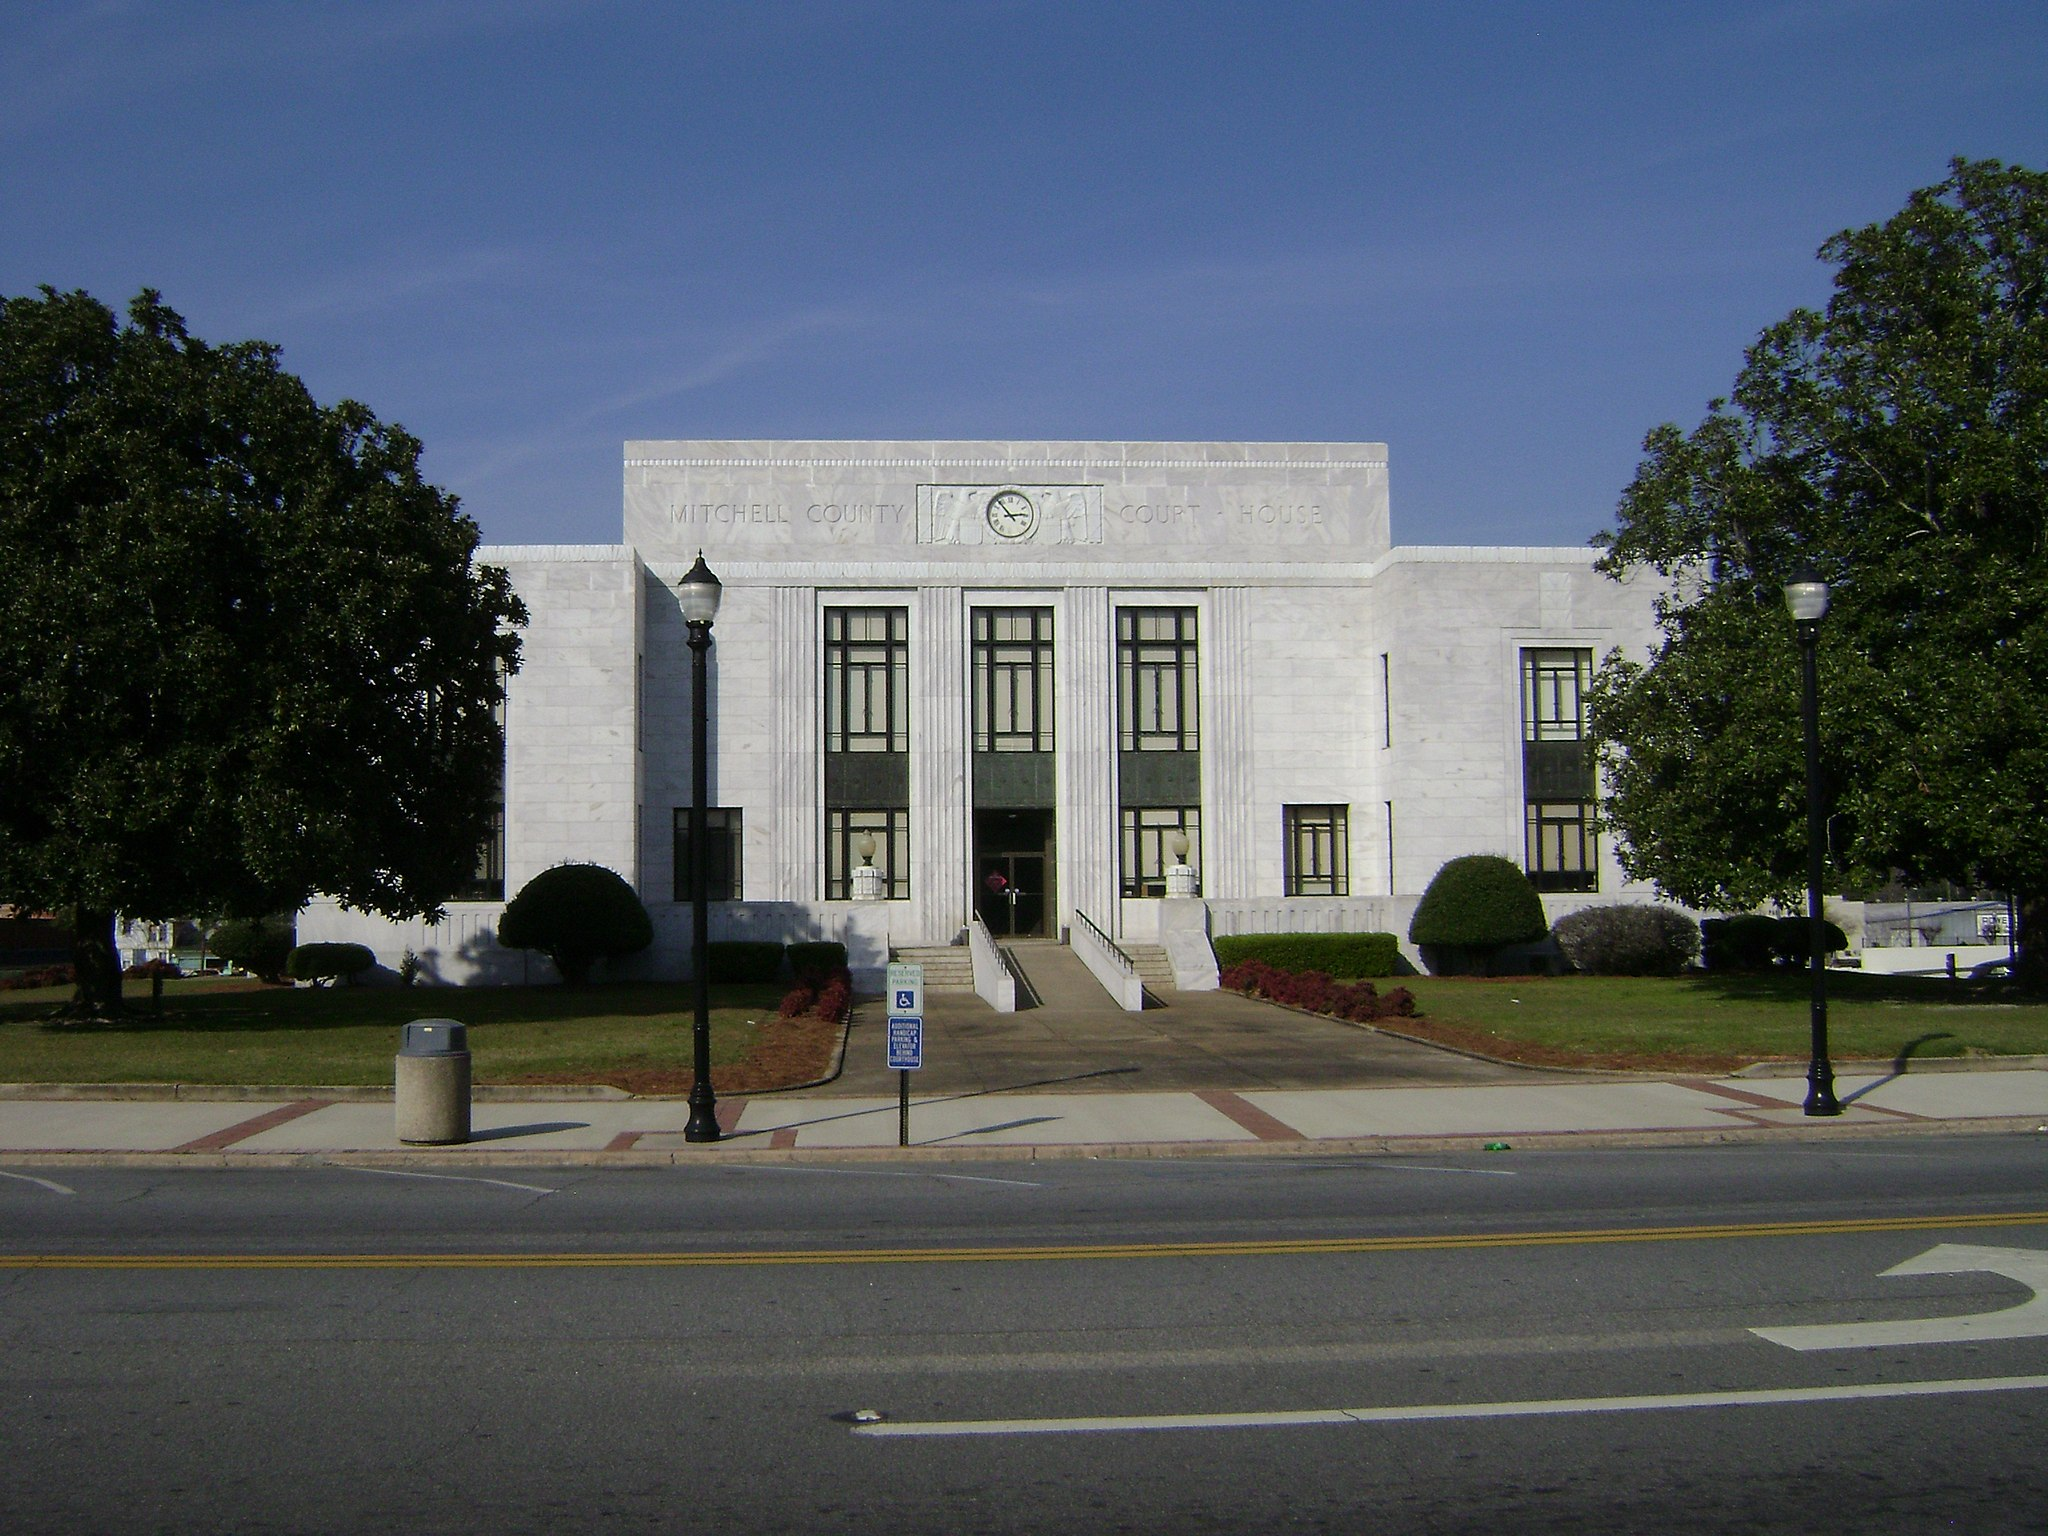 Mitchell County Courthouse (South face)